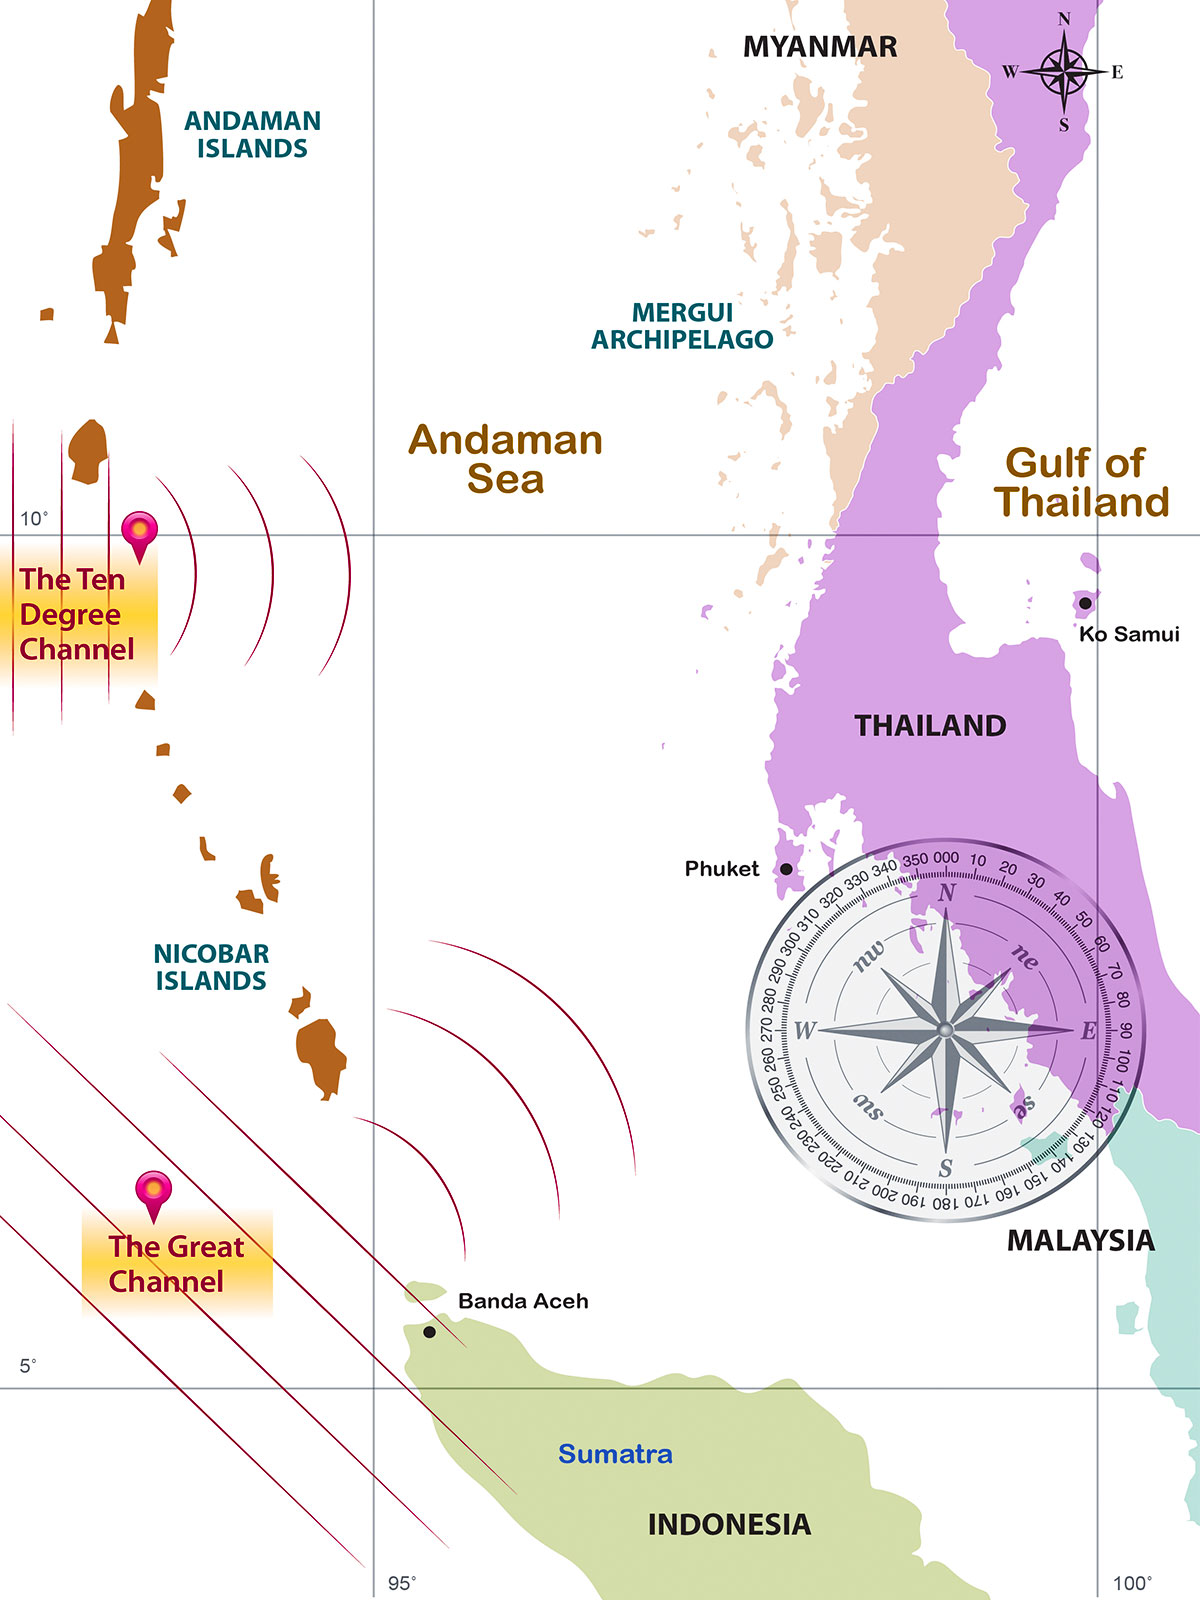 Andaman Coast groundswell swell windows and wave refraction | Surfing Thailand | Surf Tourism Research | Dr. Steven A. Martin